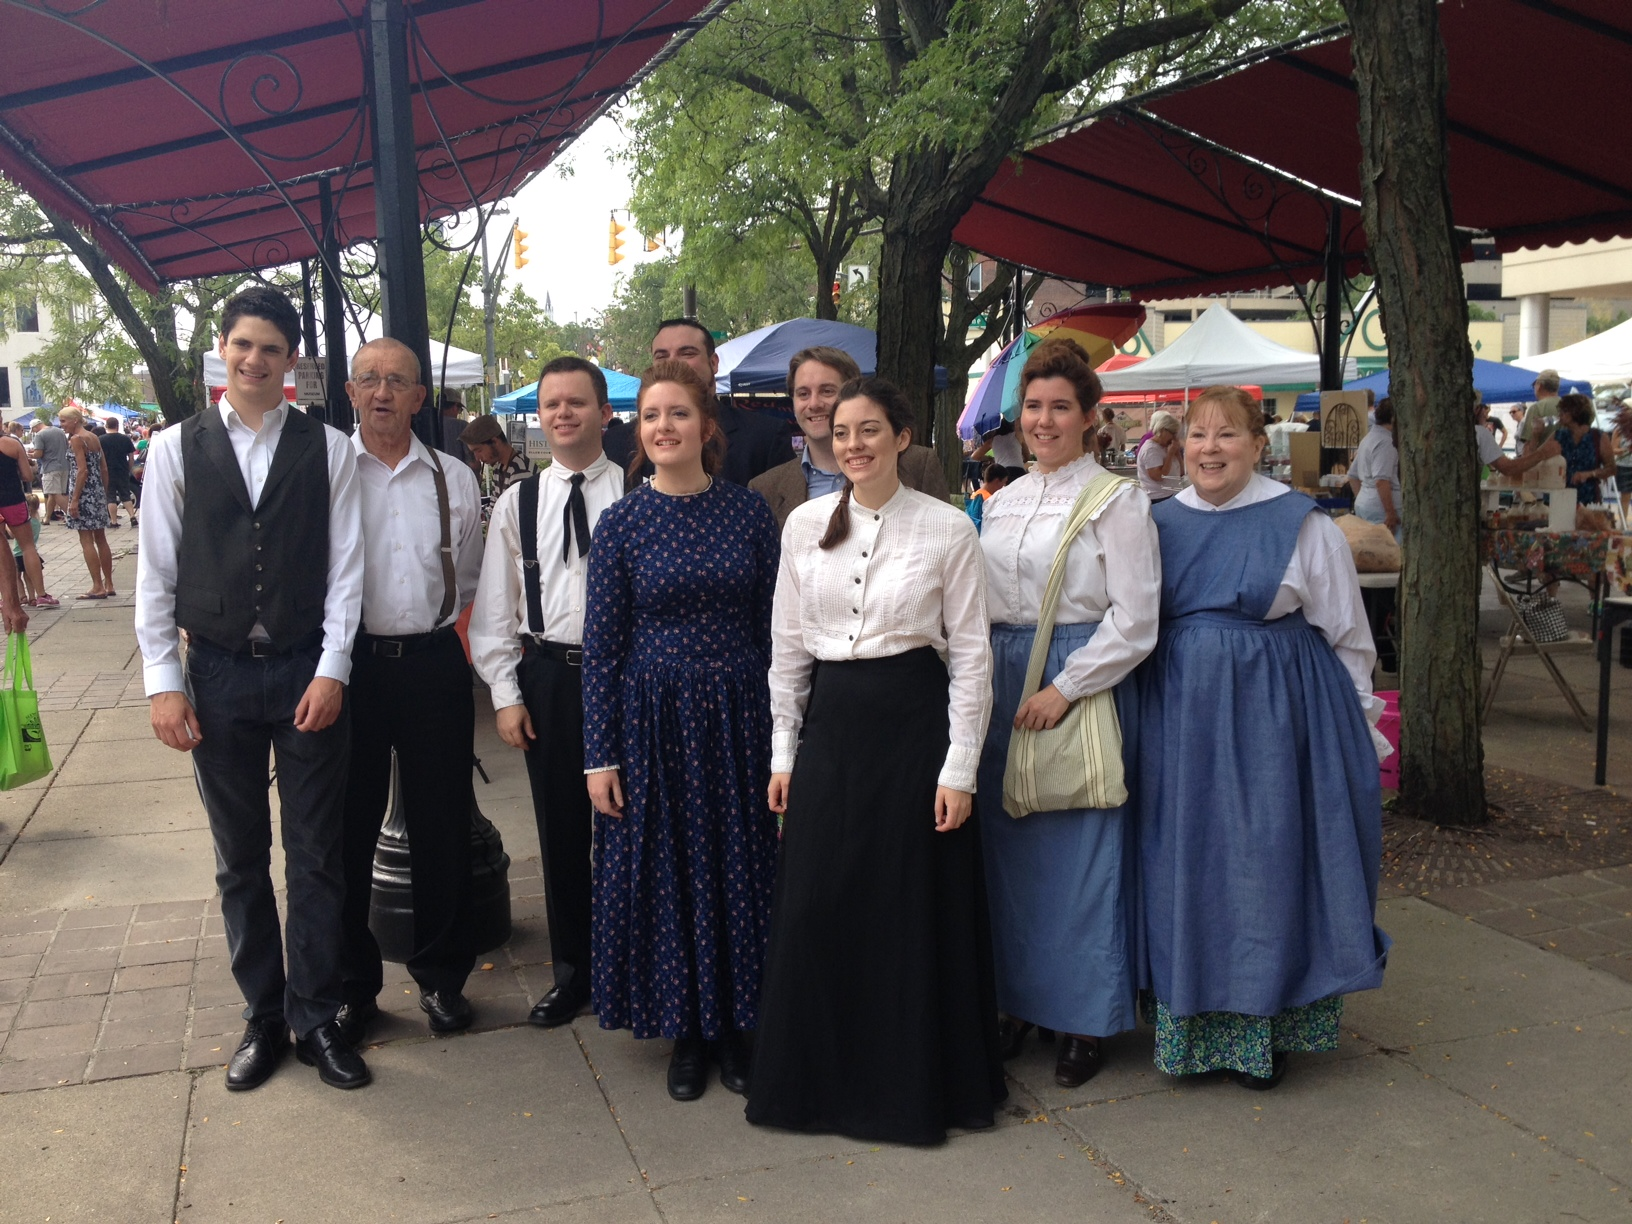 Some of the cast of BEND US, at Taste of the Arts on August 29, 2015.